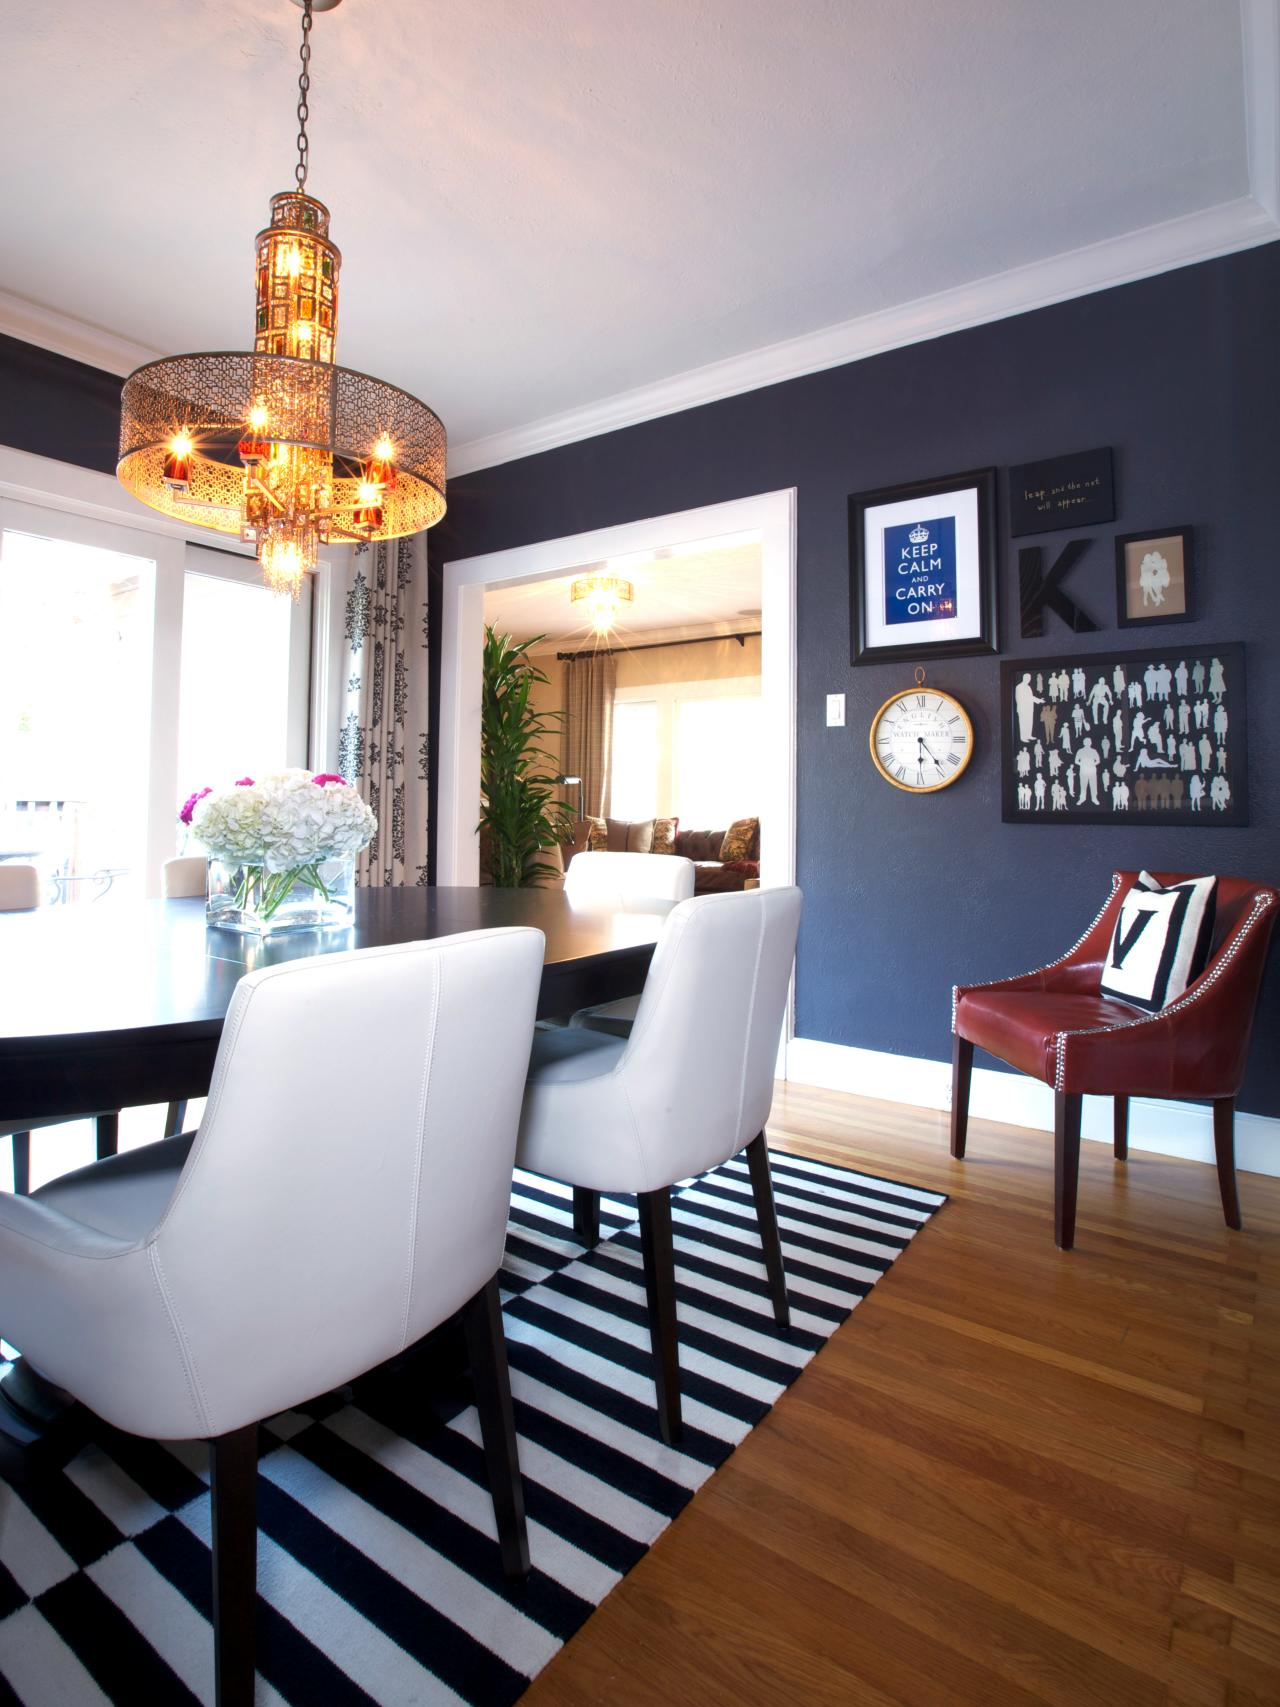 Contemporary dining room with navy blue chairs - Monochrome Elegance 30 Black And White Striped Rugs